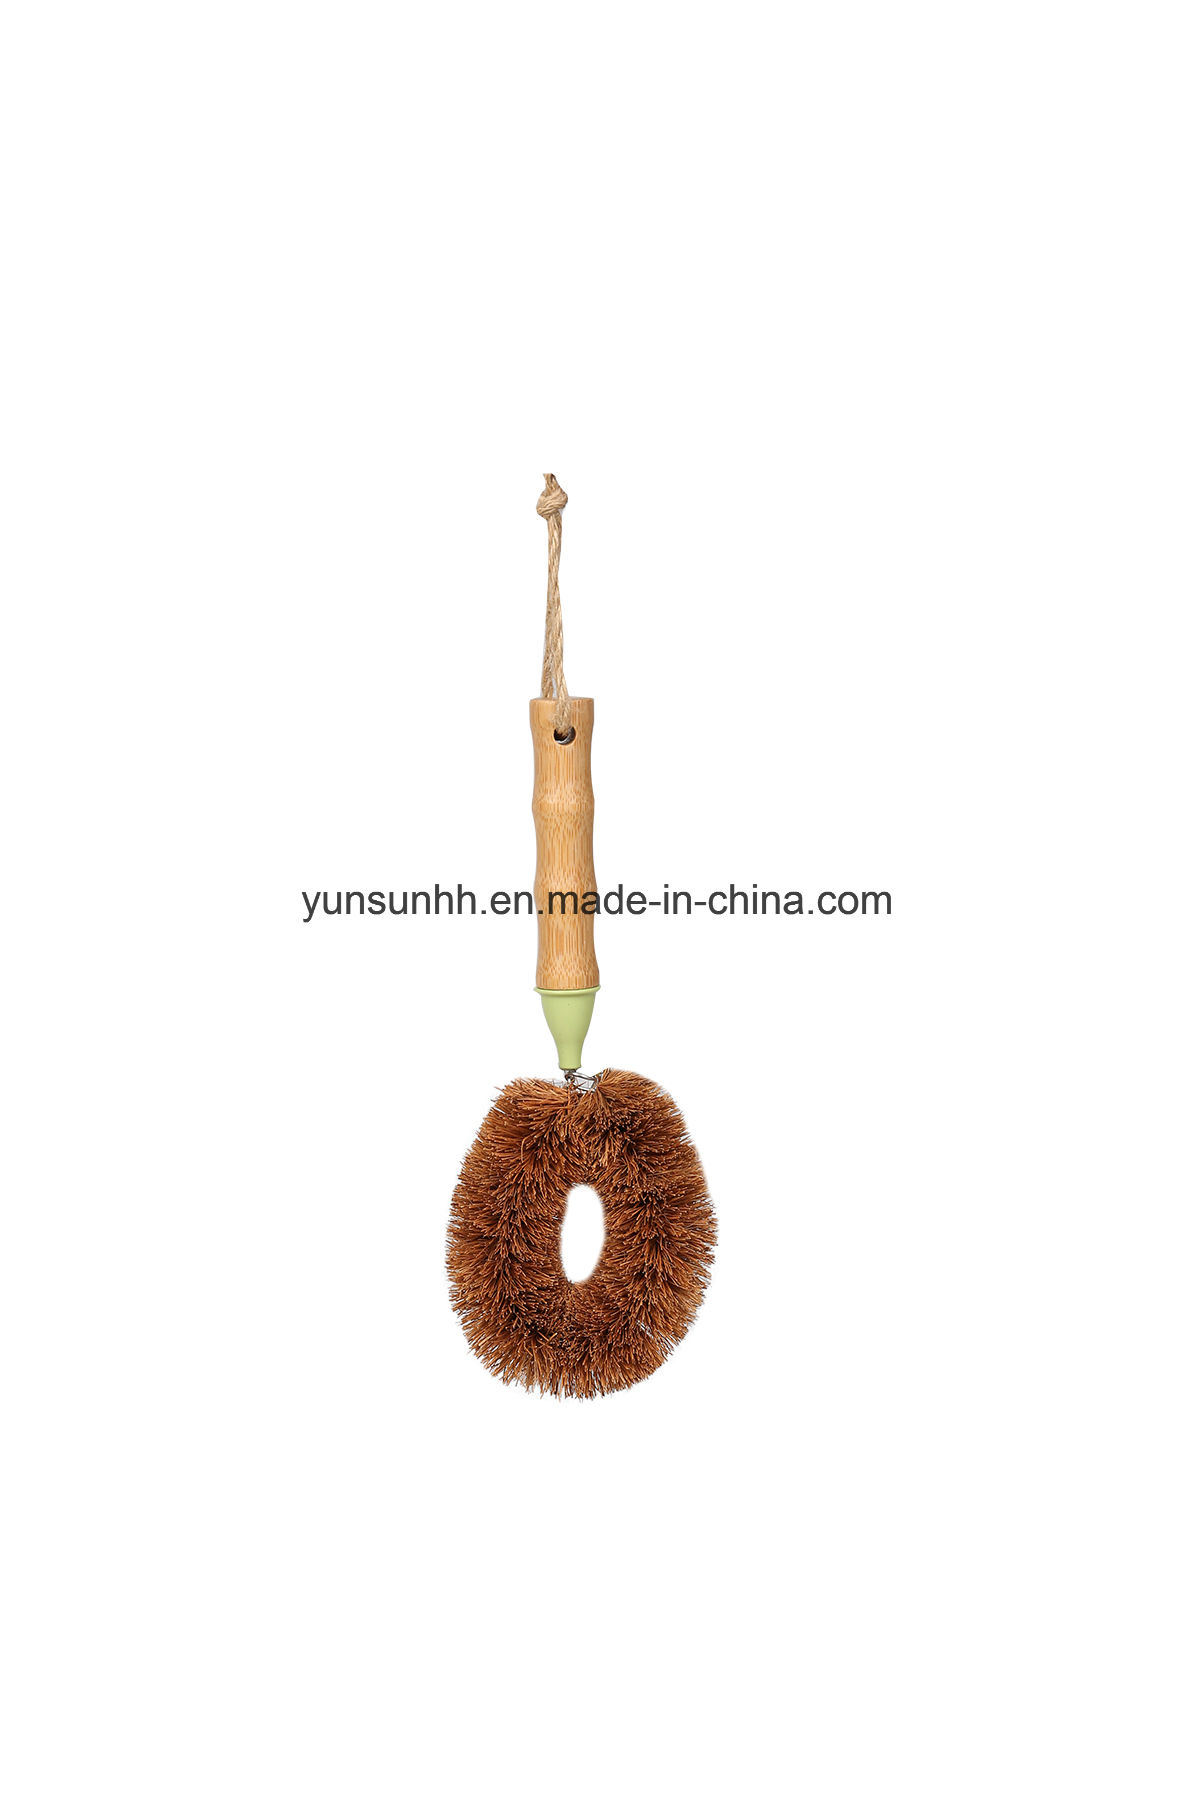 Pan/Palm Brush with Bamboo Handle